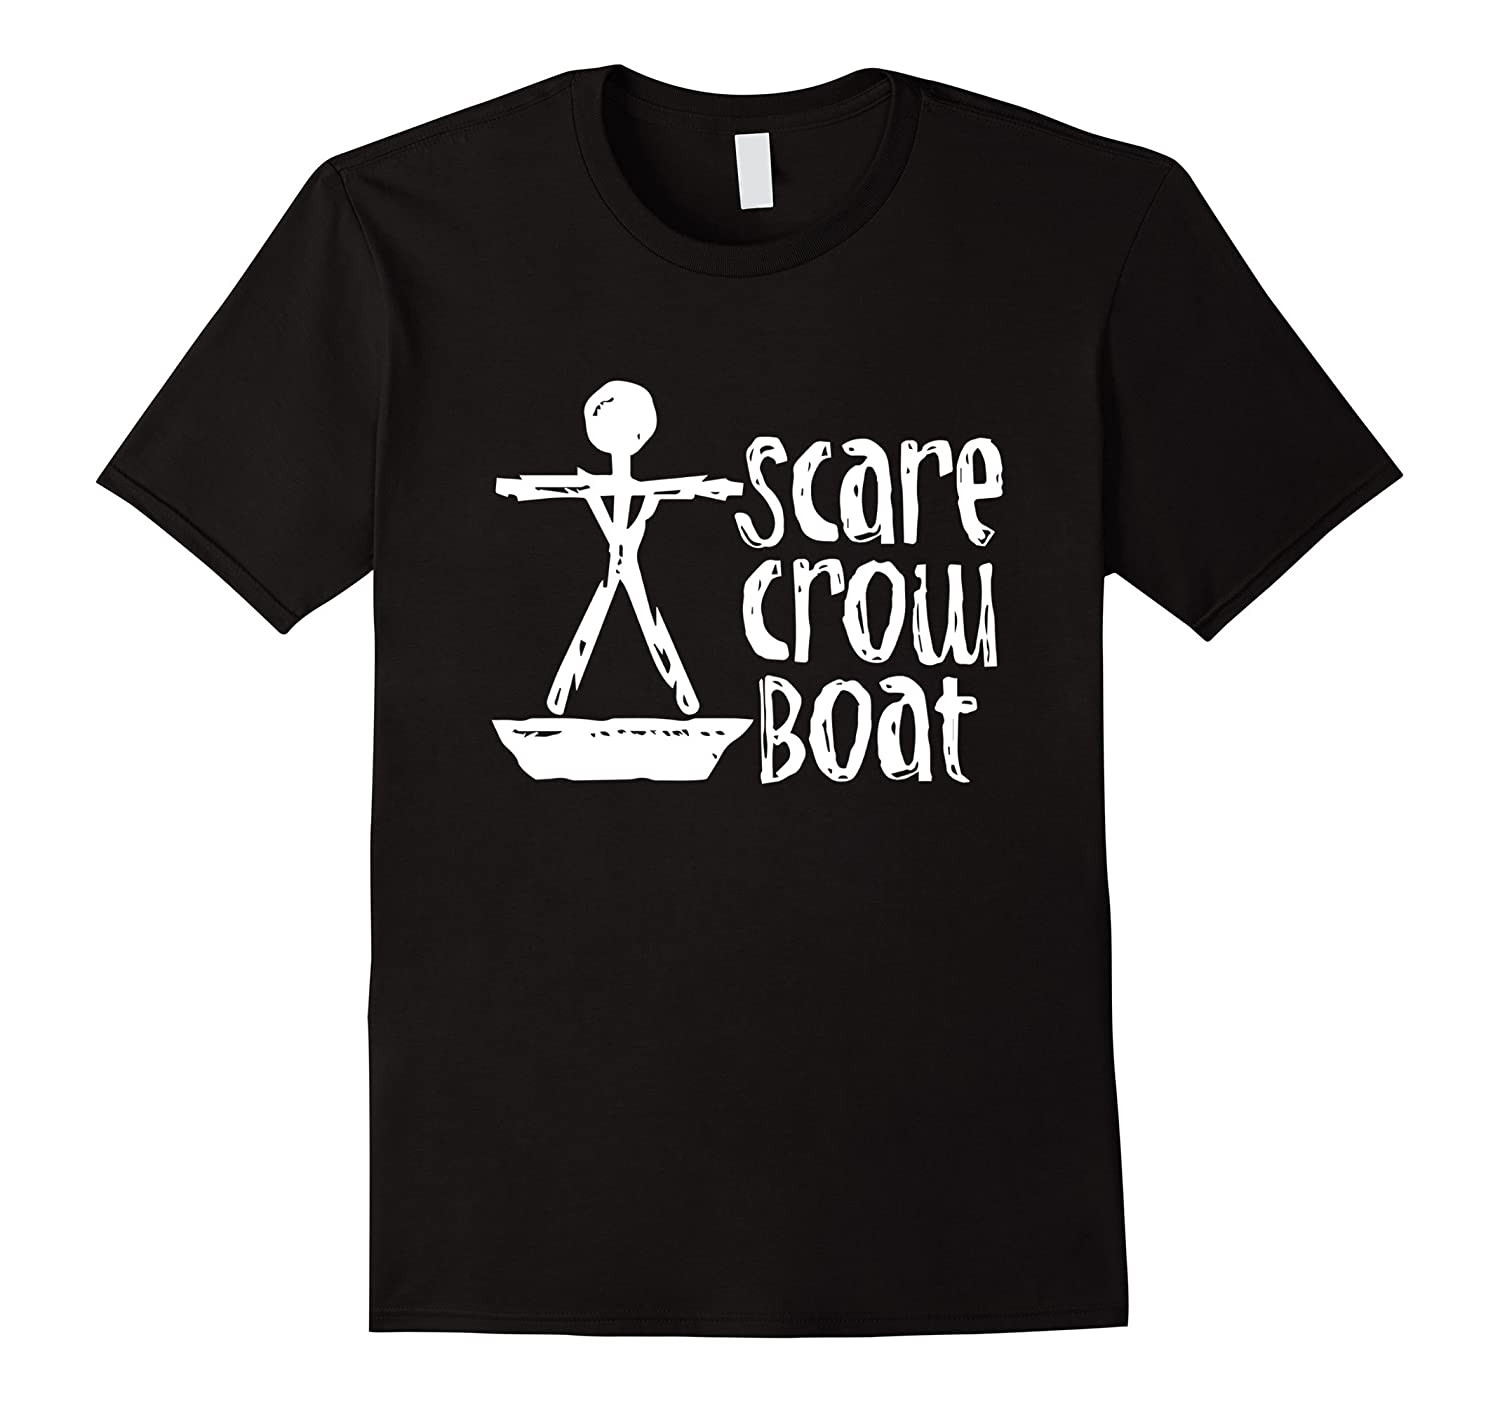 ScareCrow Boat T-Shirt  Scare Crow Boat Shirt